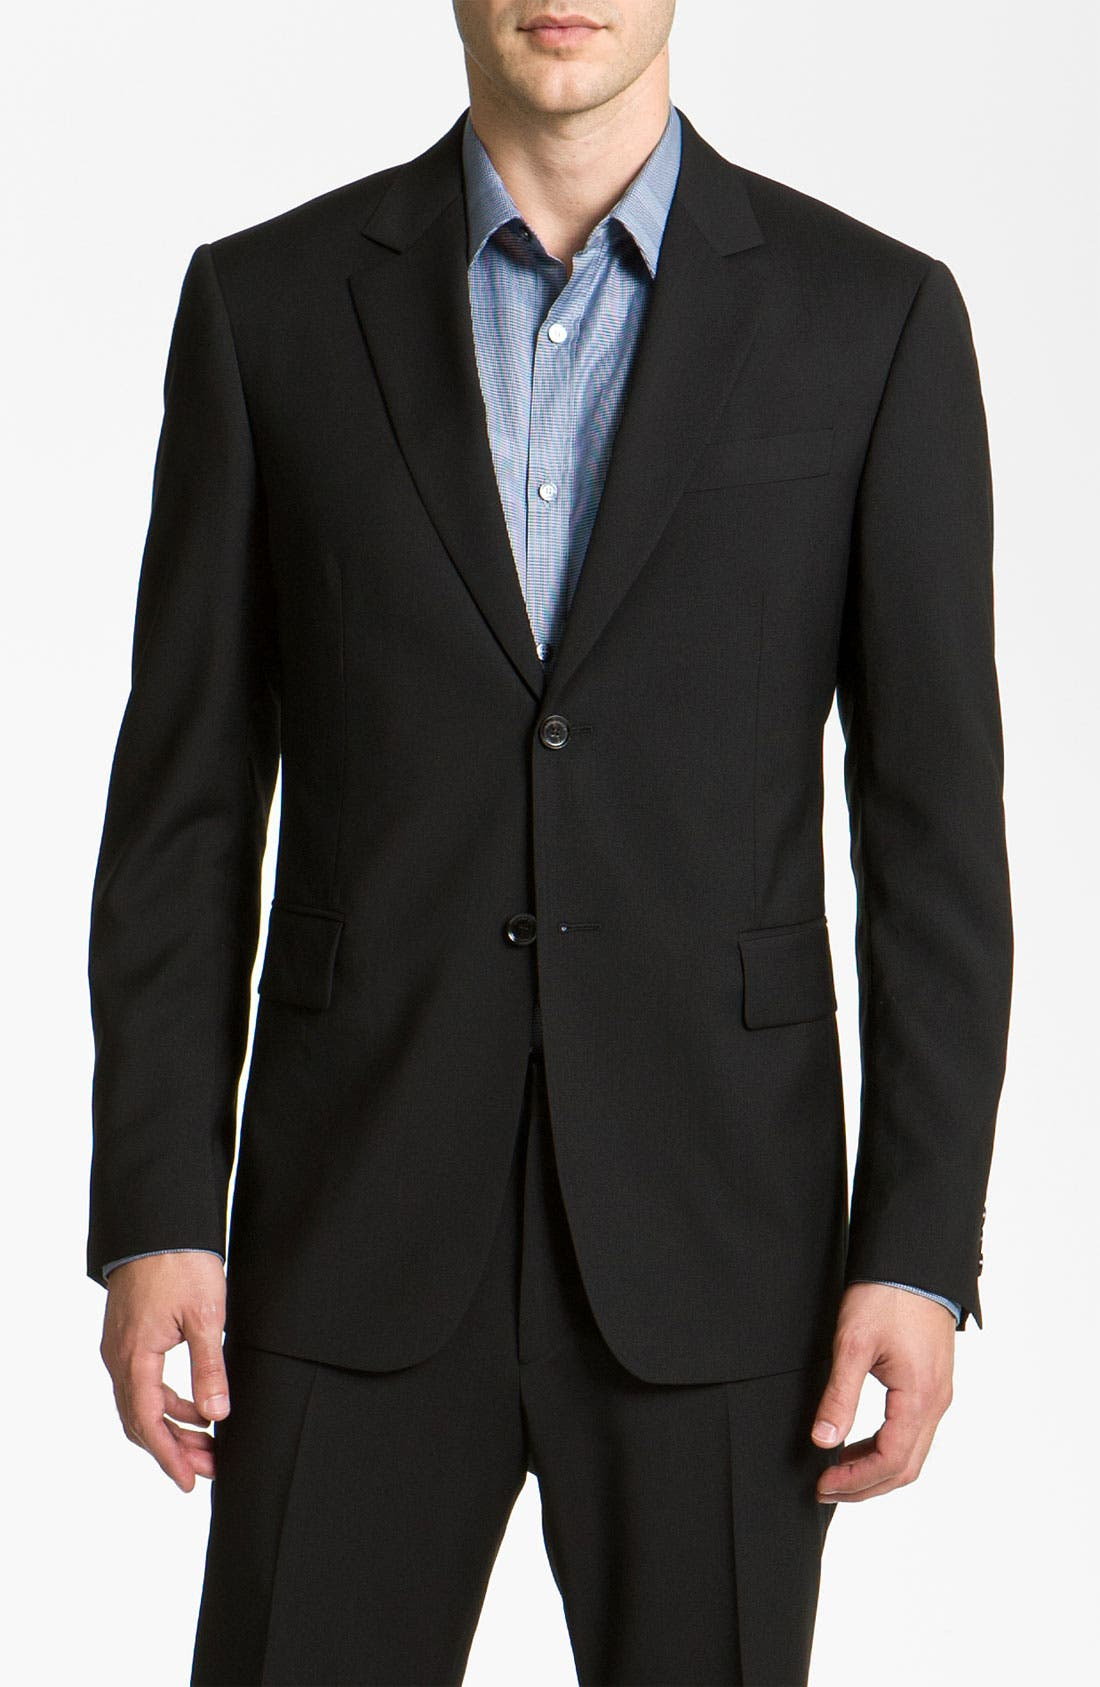 Alternate Image 1 Selected - Burberry Trim Fit Wool Suit